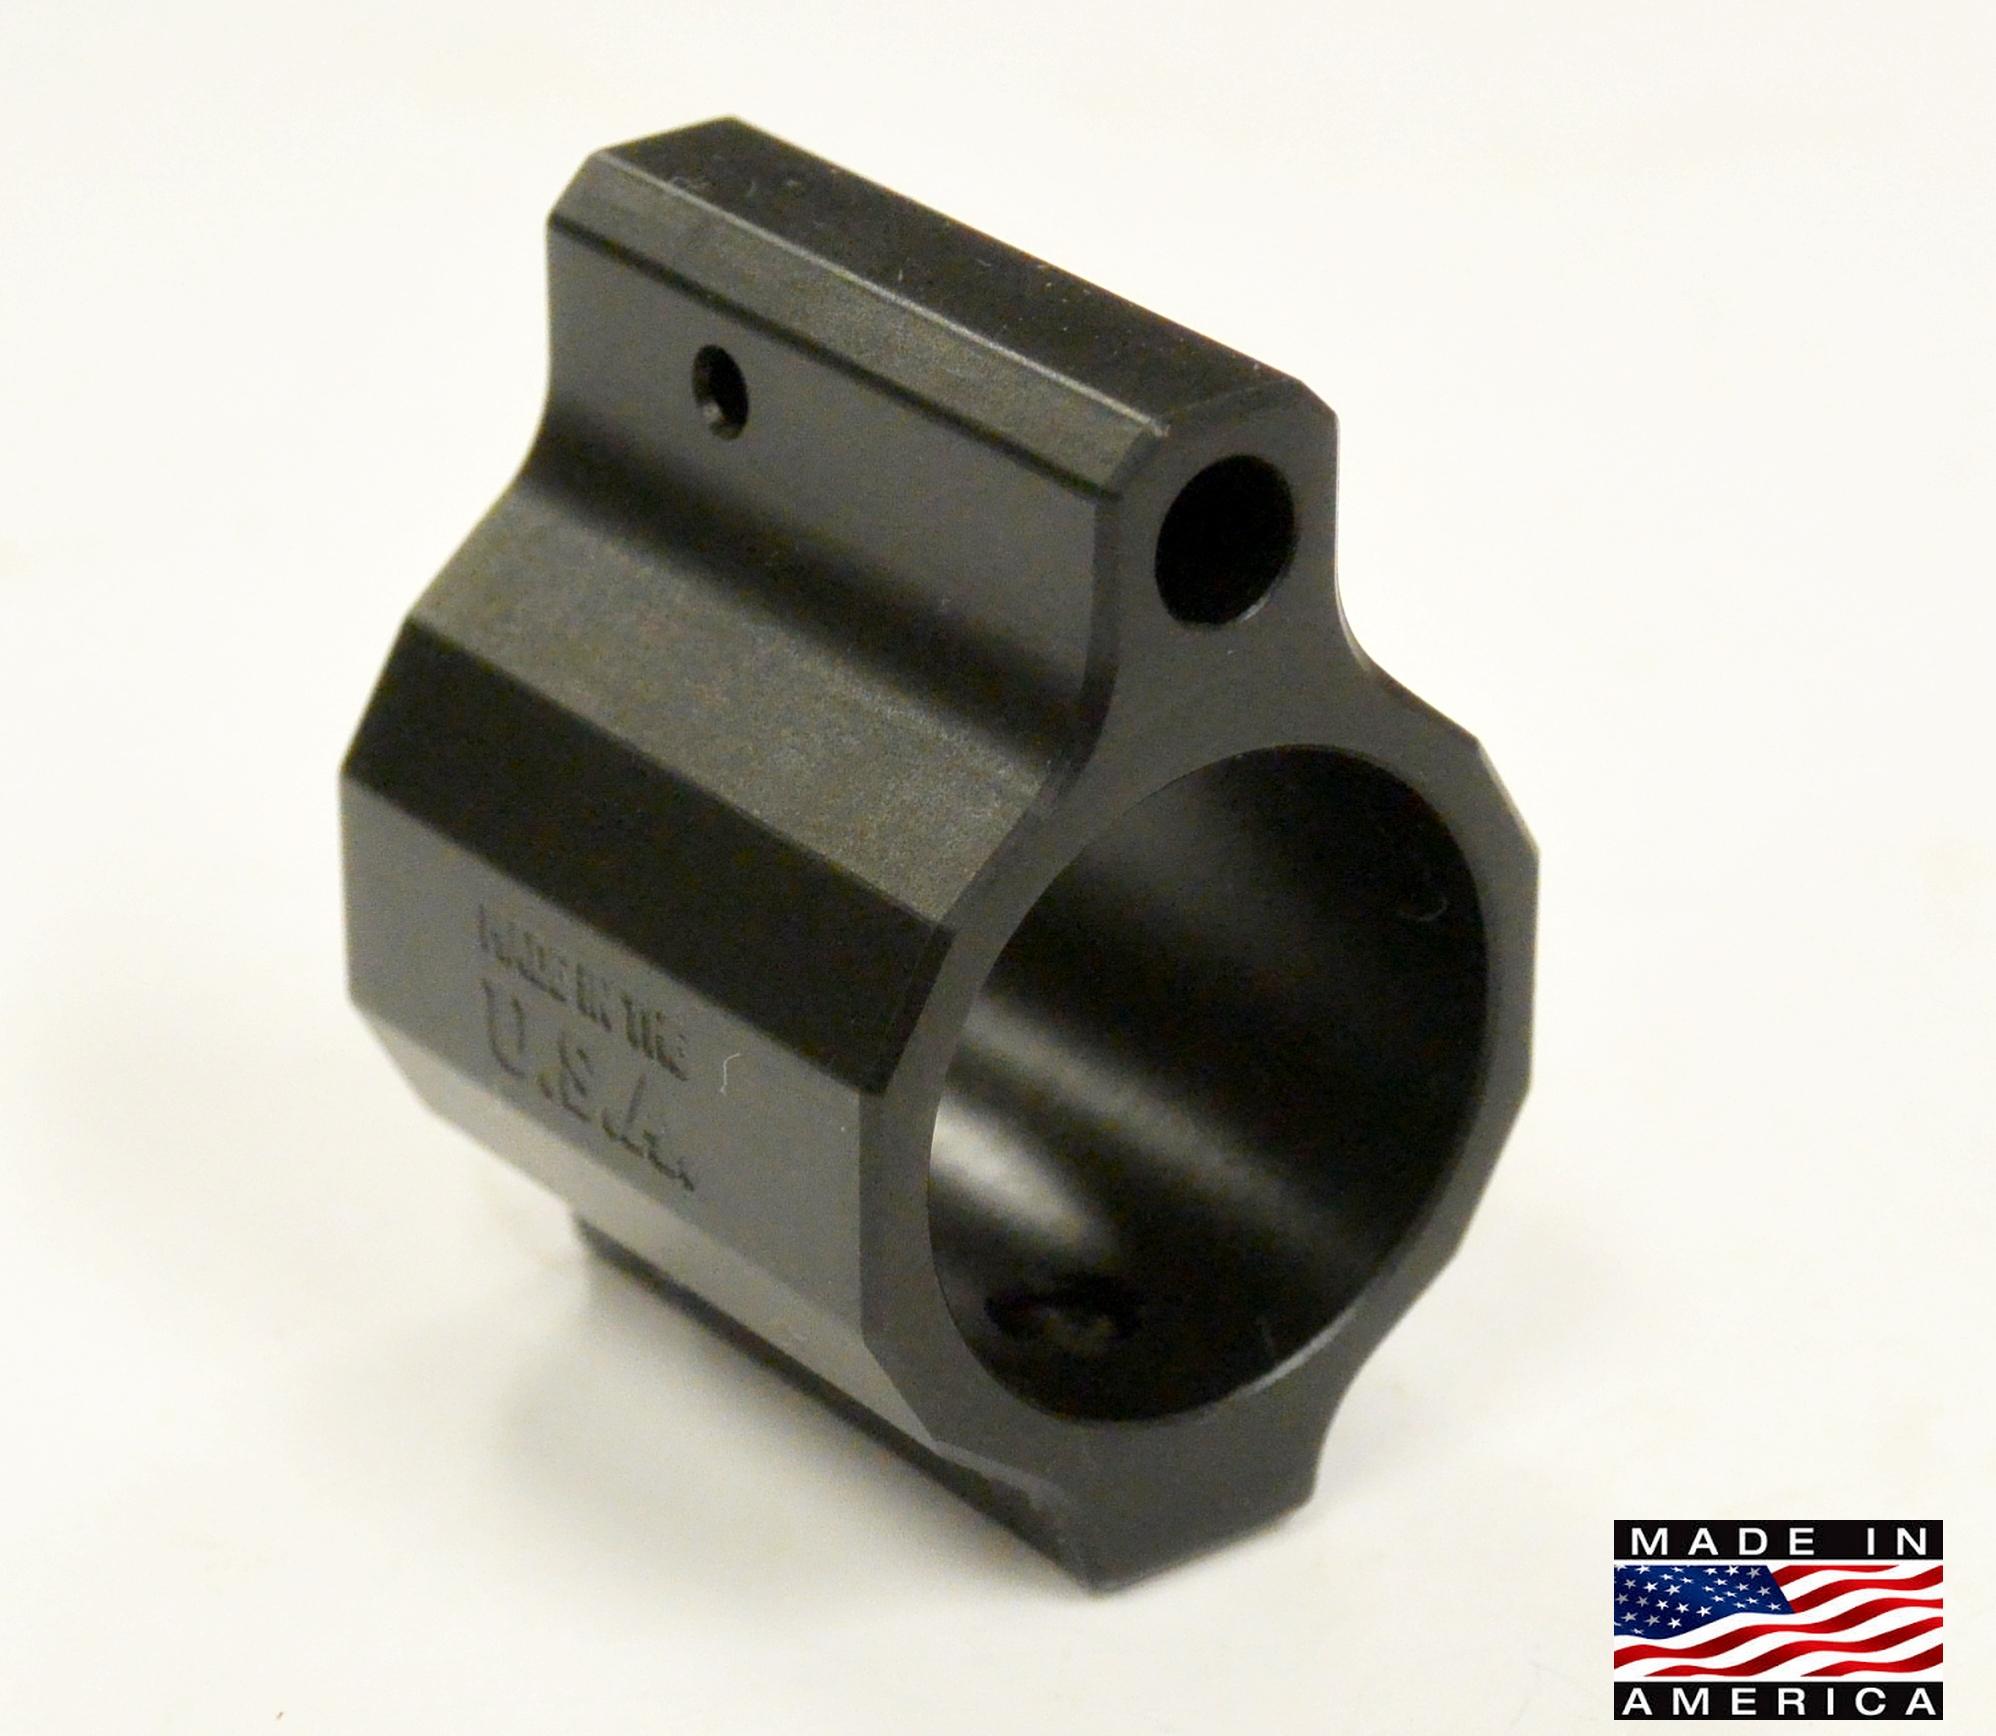 Rousch Premium Low Profile Micro Gas Block Melonite Black Nitride .750 high precision .223 5.56 308 LR308 Ar 10 AR 15 M4 M16 Best Discount Wholesale AR Parts and Accessories Austin Texas USA